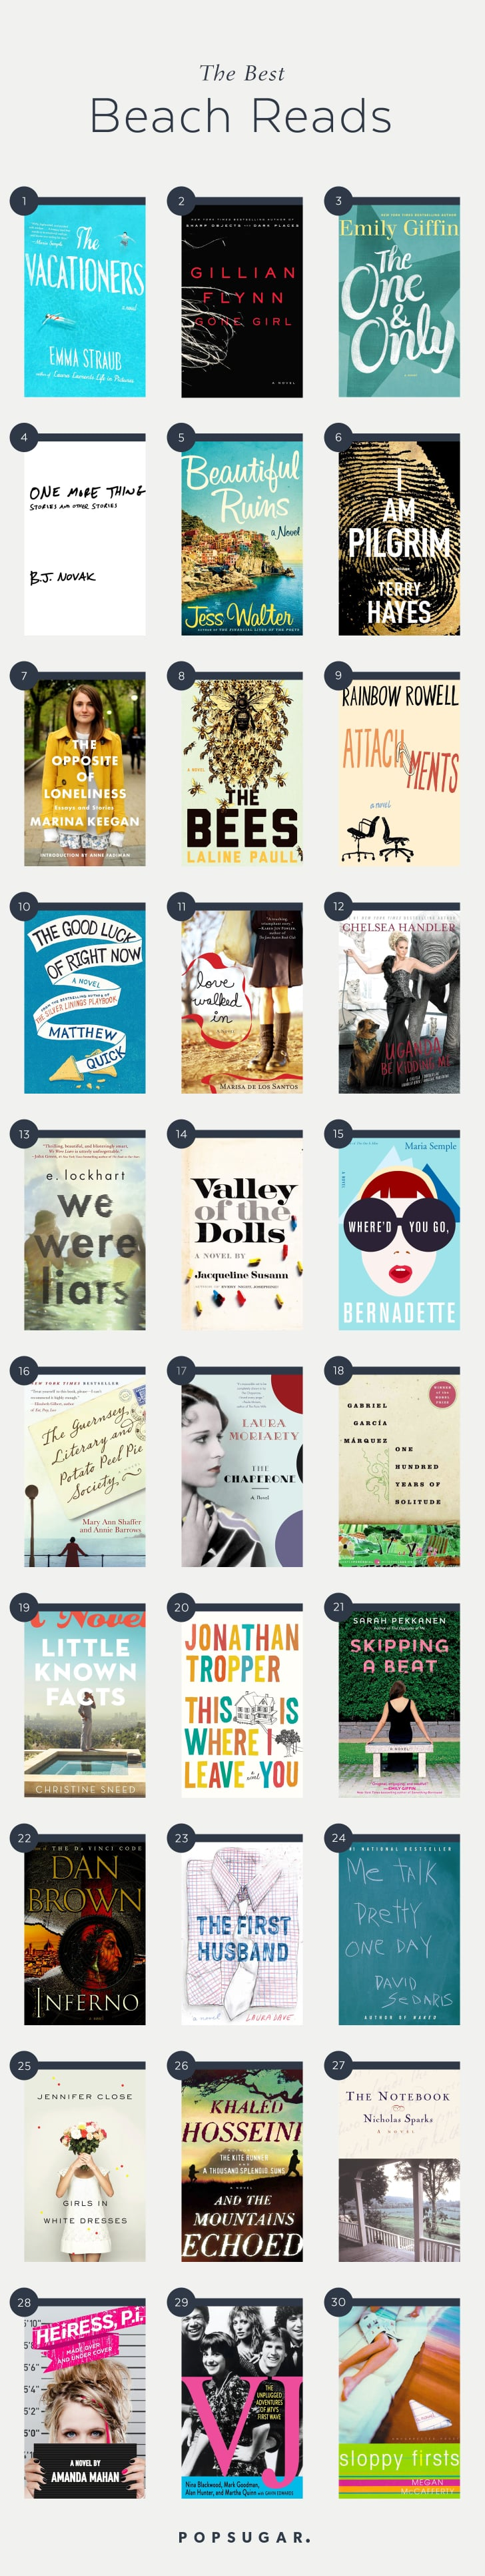 The Best Beach Reads For a Summer (or Spring!) Getaway